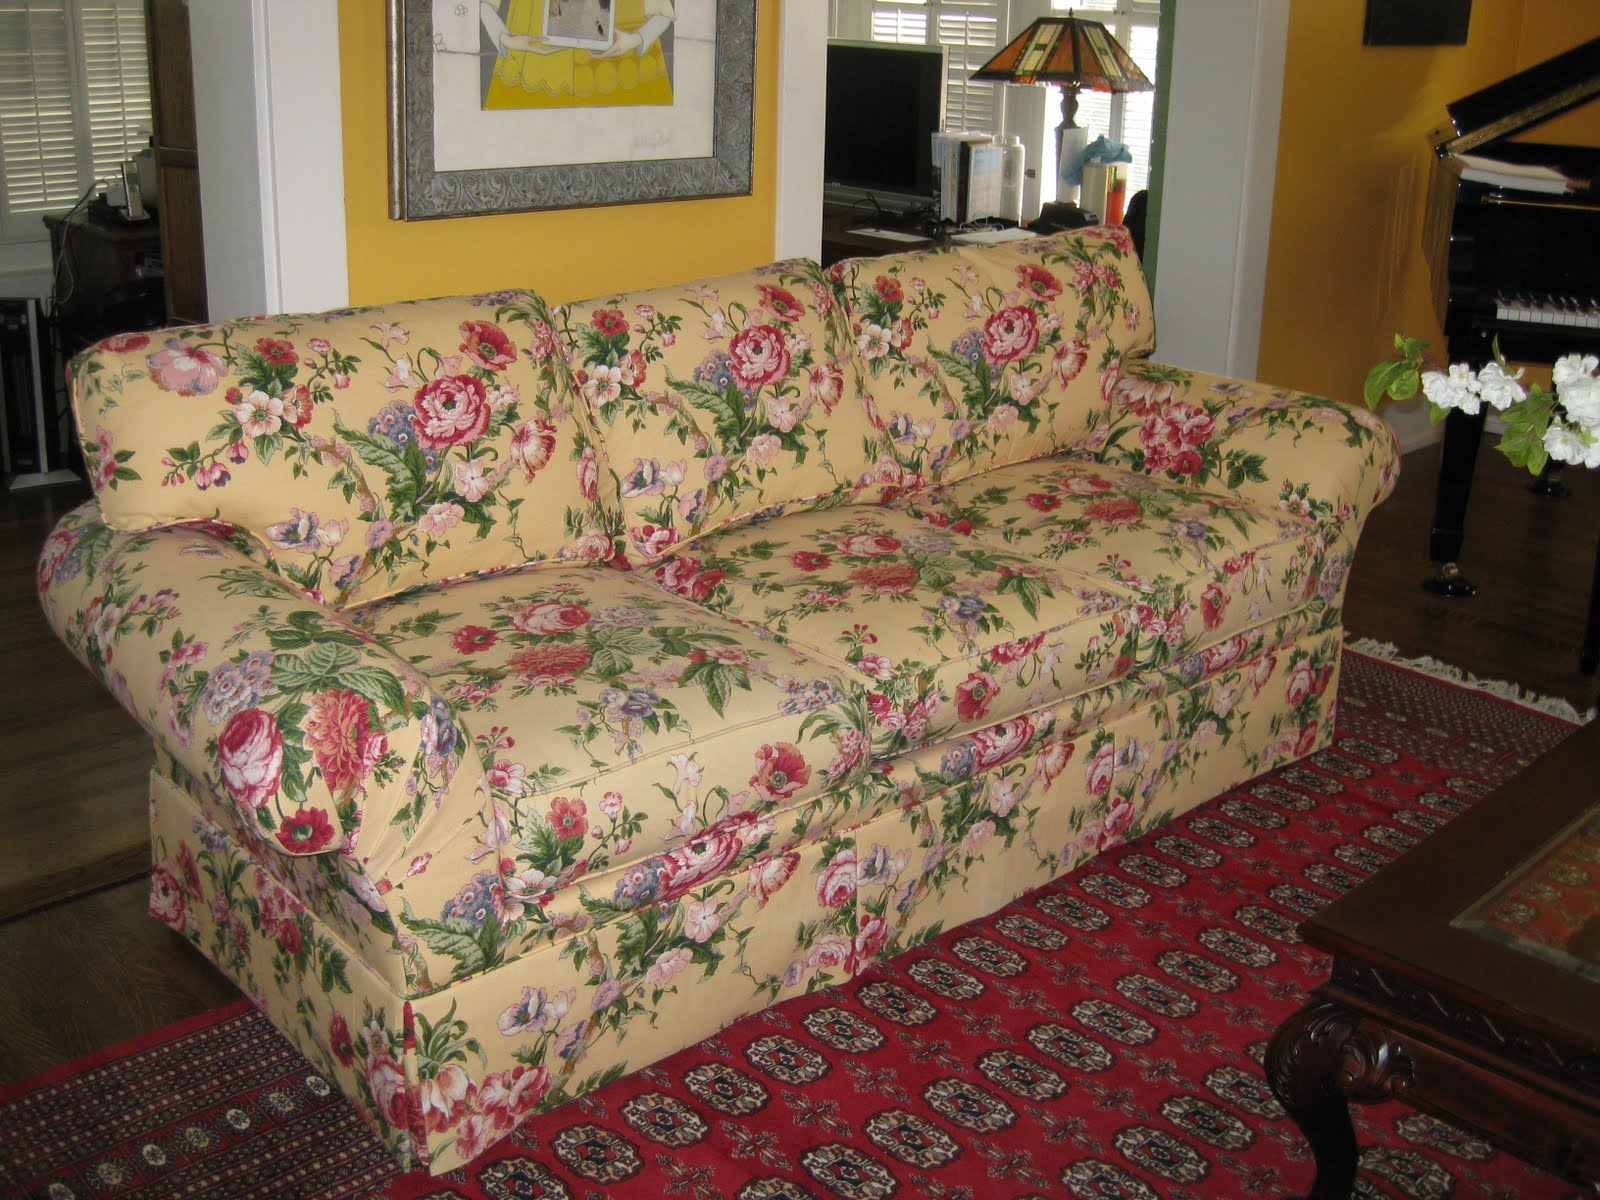 Admirable Custom Couch Covers With Floral Custom Couch Coversplus Red Area  Rug Plus Tradtional Wooden Table